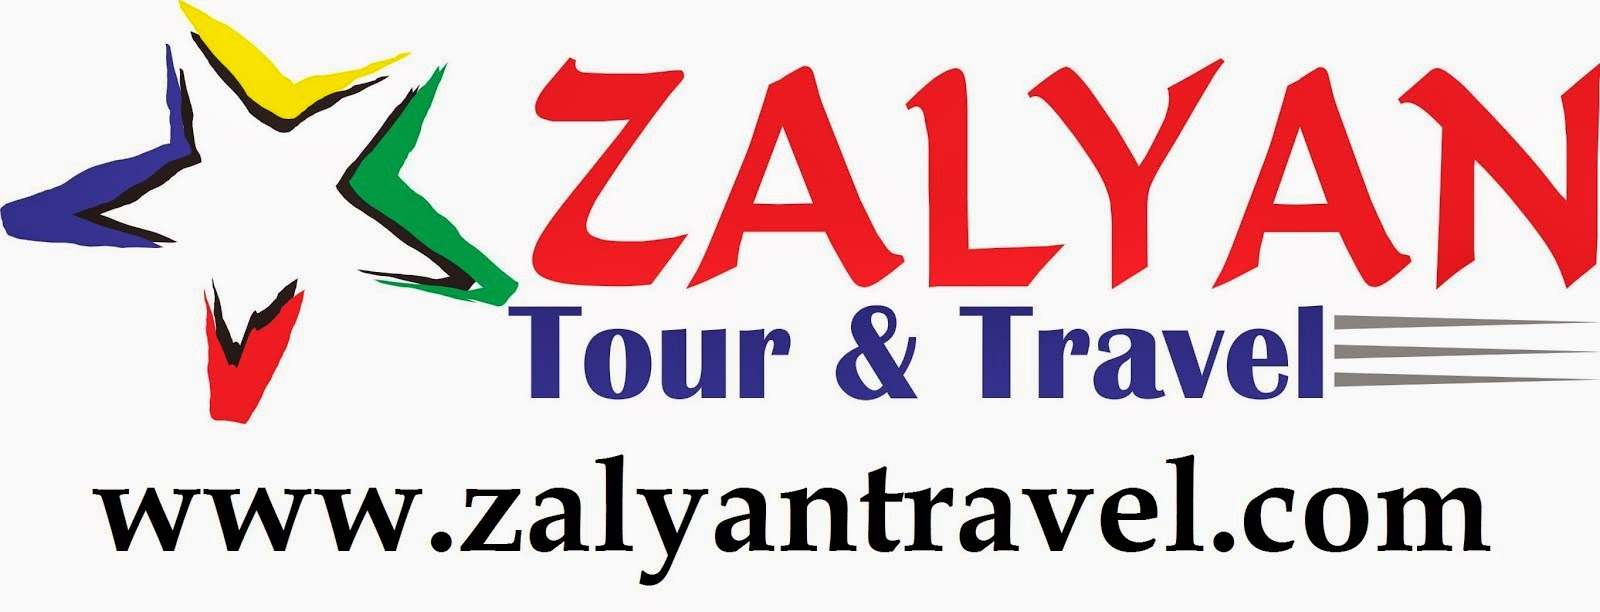 website Zalyan Travel